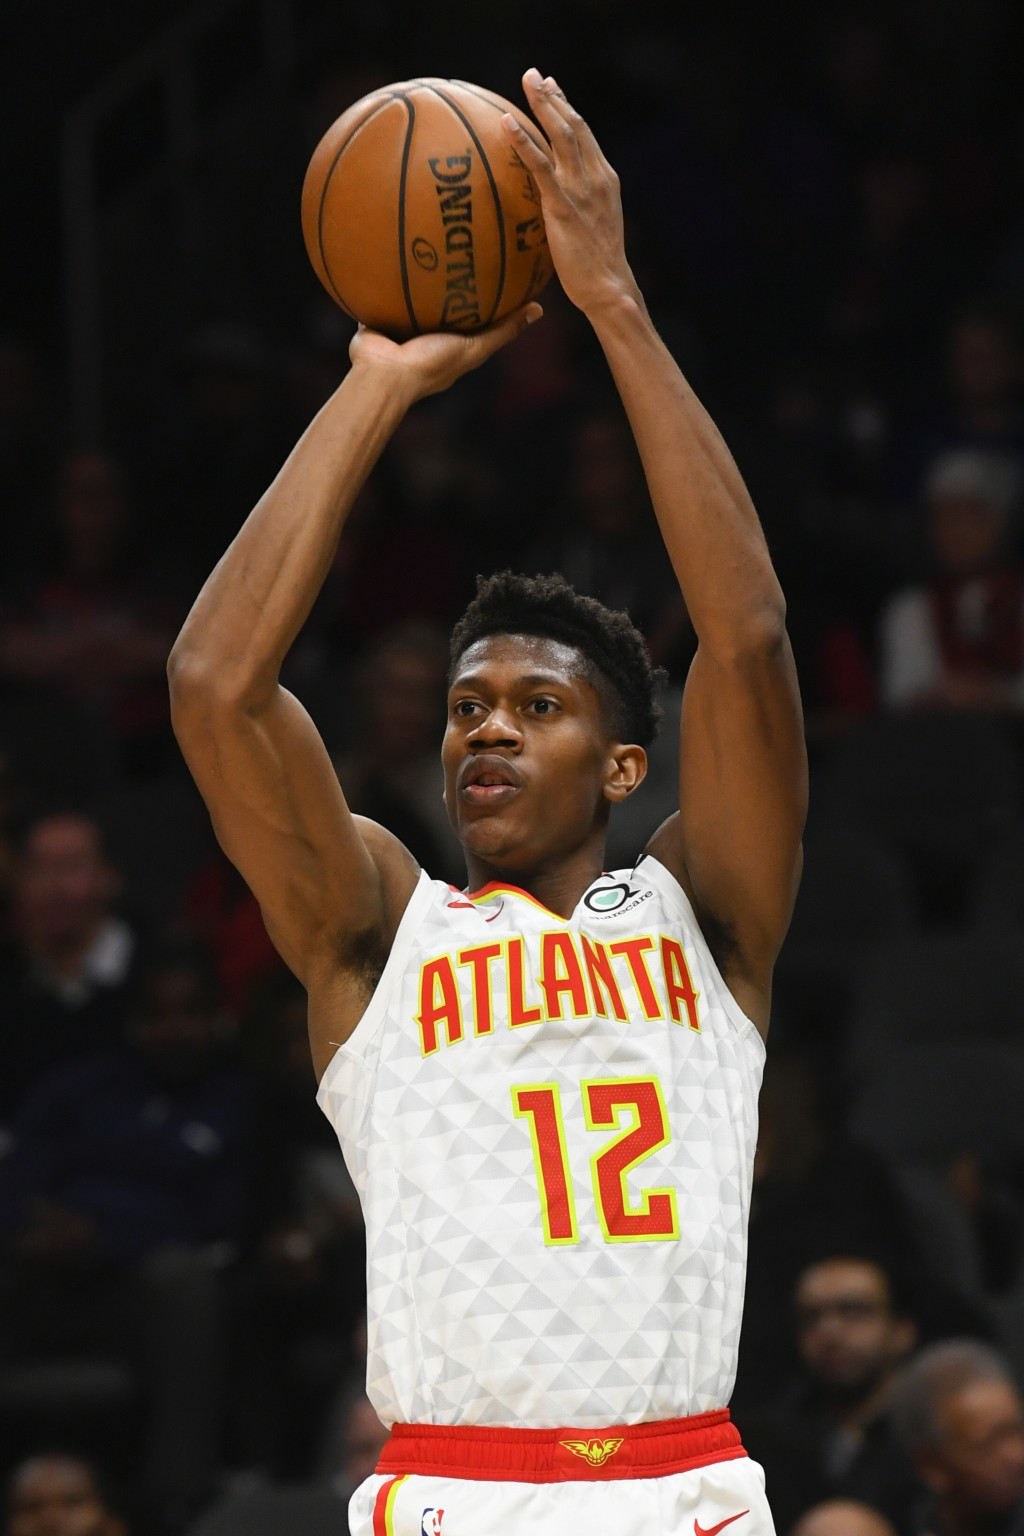 Atlanta Hawks forward De'Andre Hunter shoots during the first half of an NBA basketball game against the Denver Nuggets, Monday, Jan. 6, 2020, in Atla...